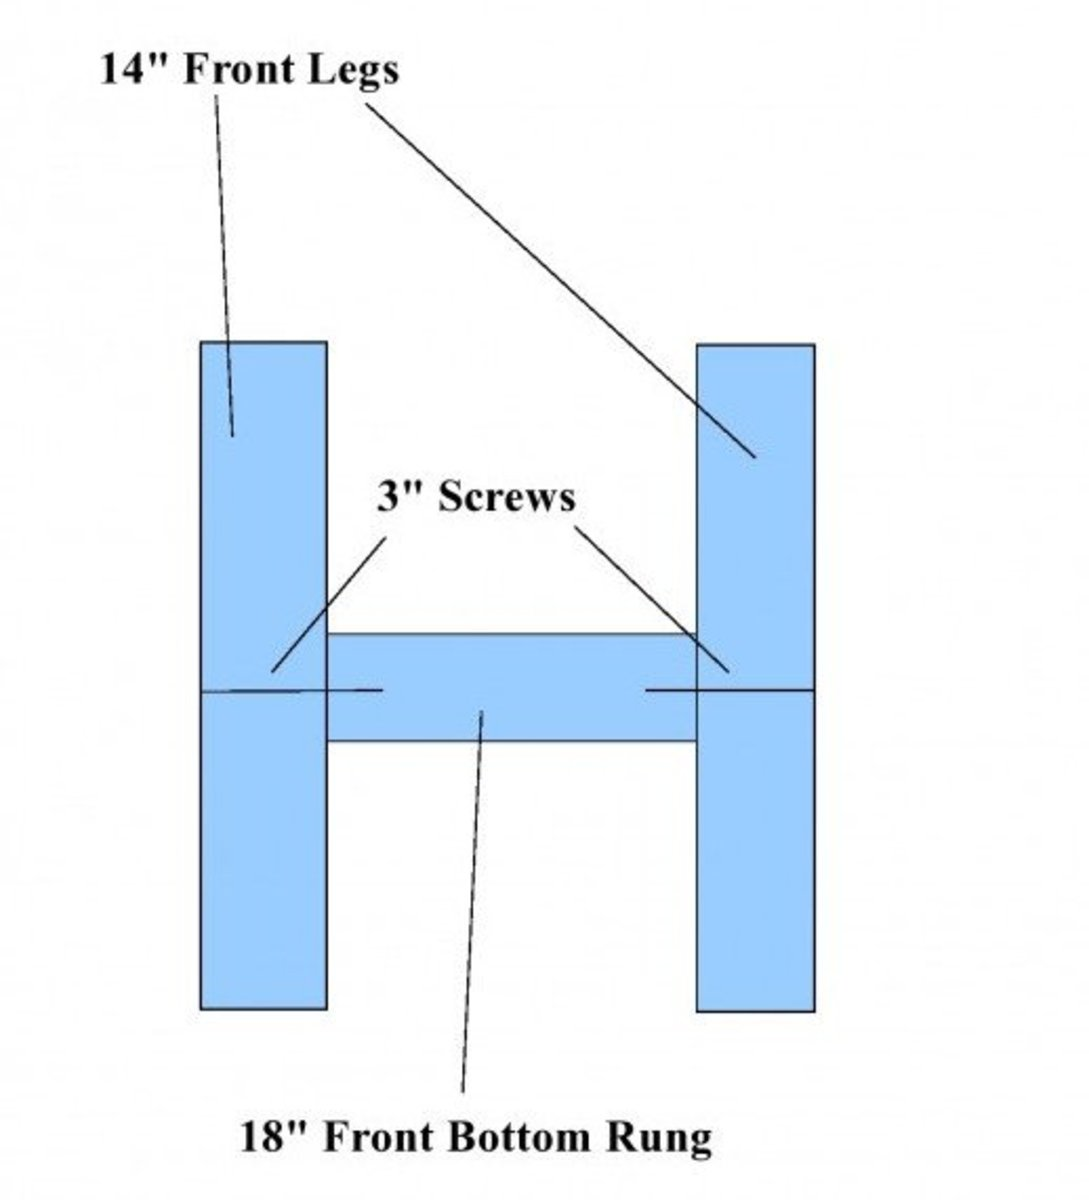 Chair Front Legs and Front Rung